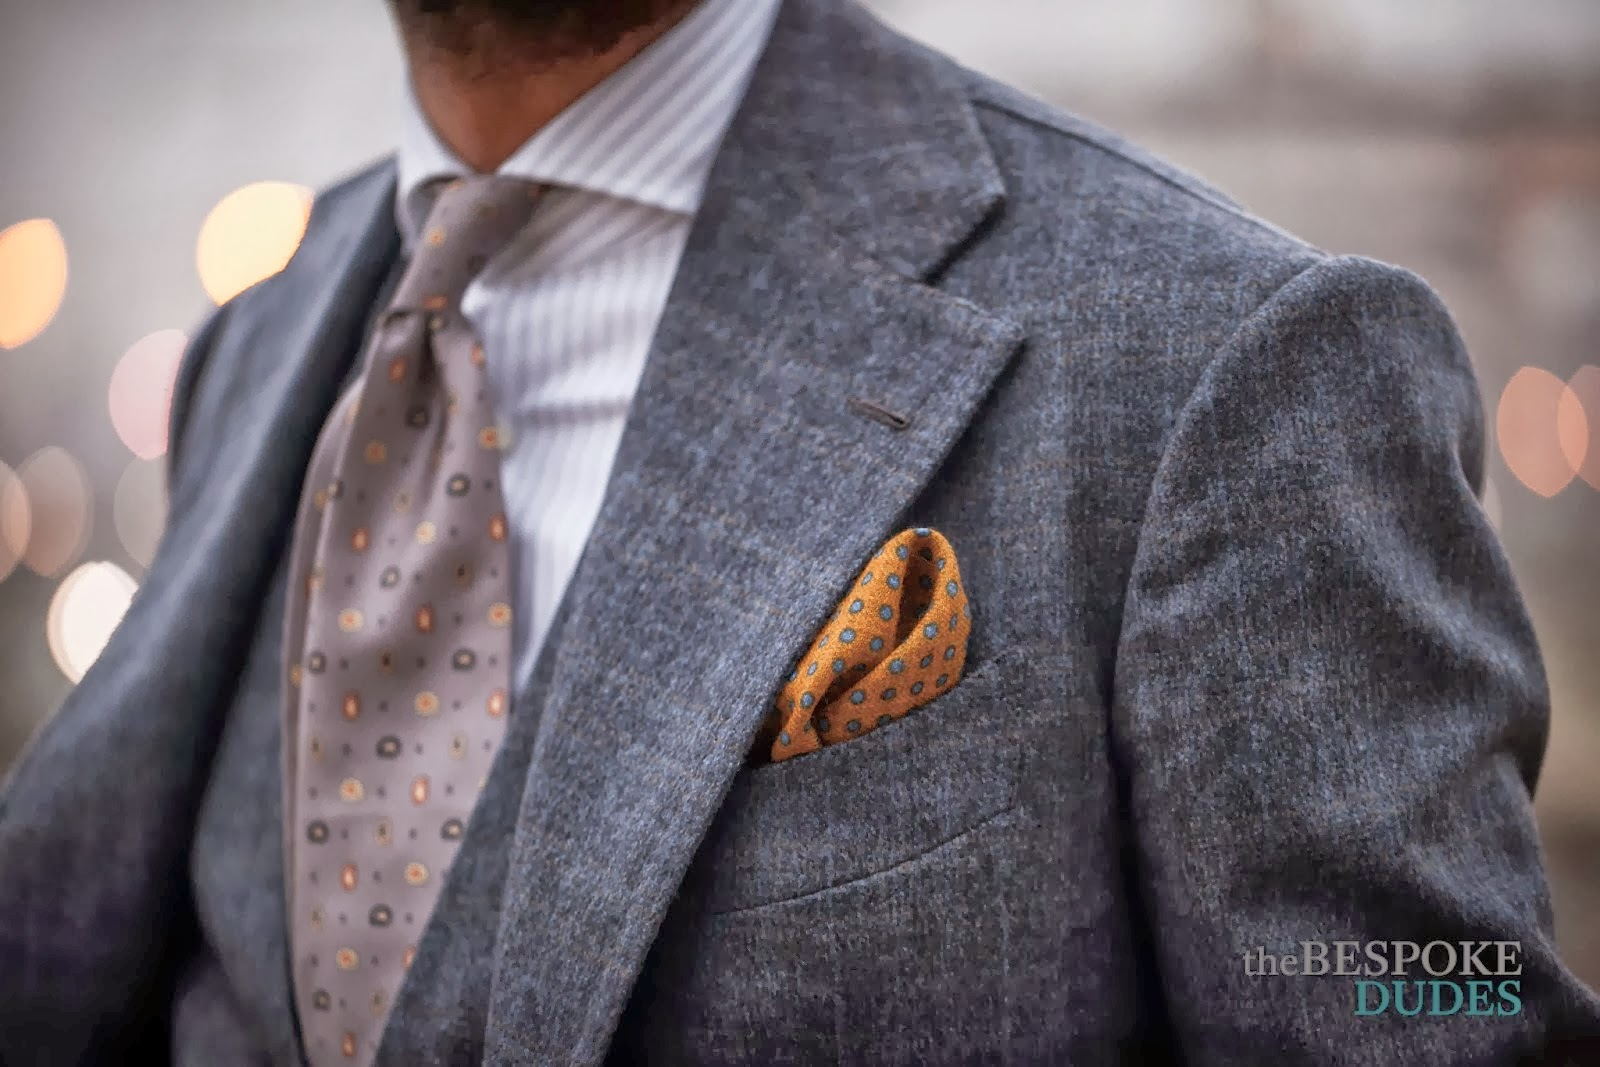 About the Pocket Square